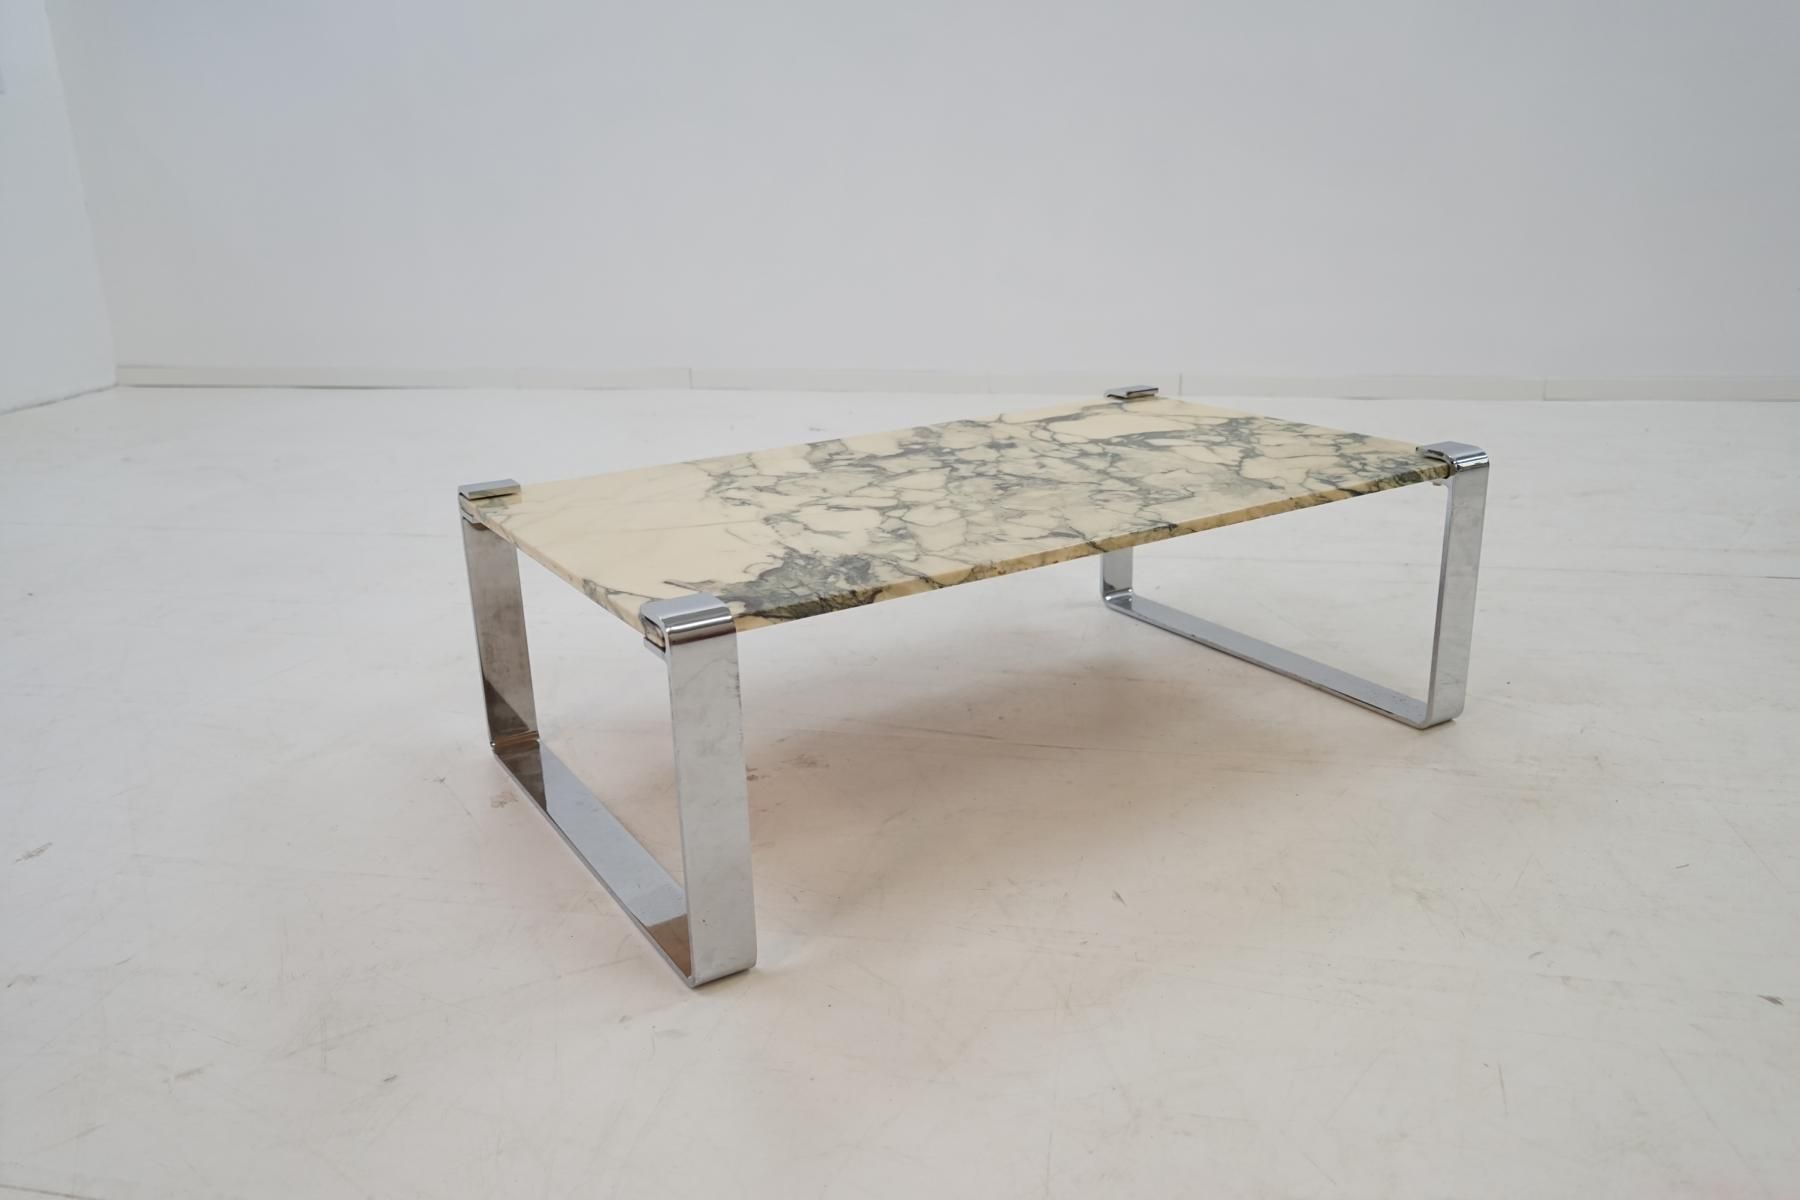 Marble & Chrome Coffee Table by Peter Draenert 1970s for sale at